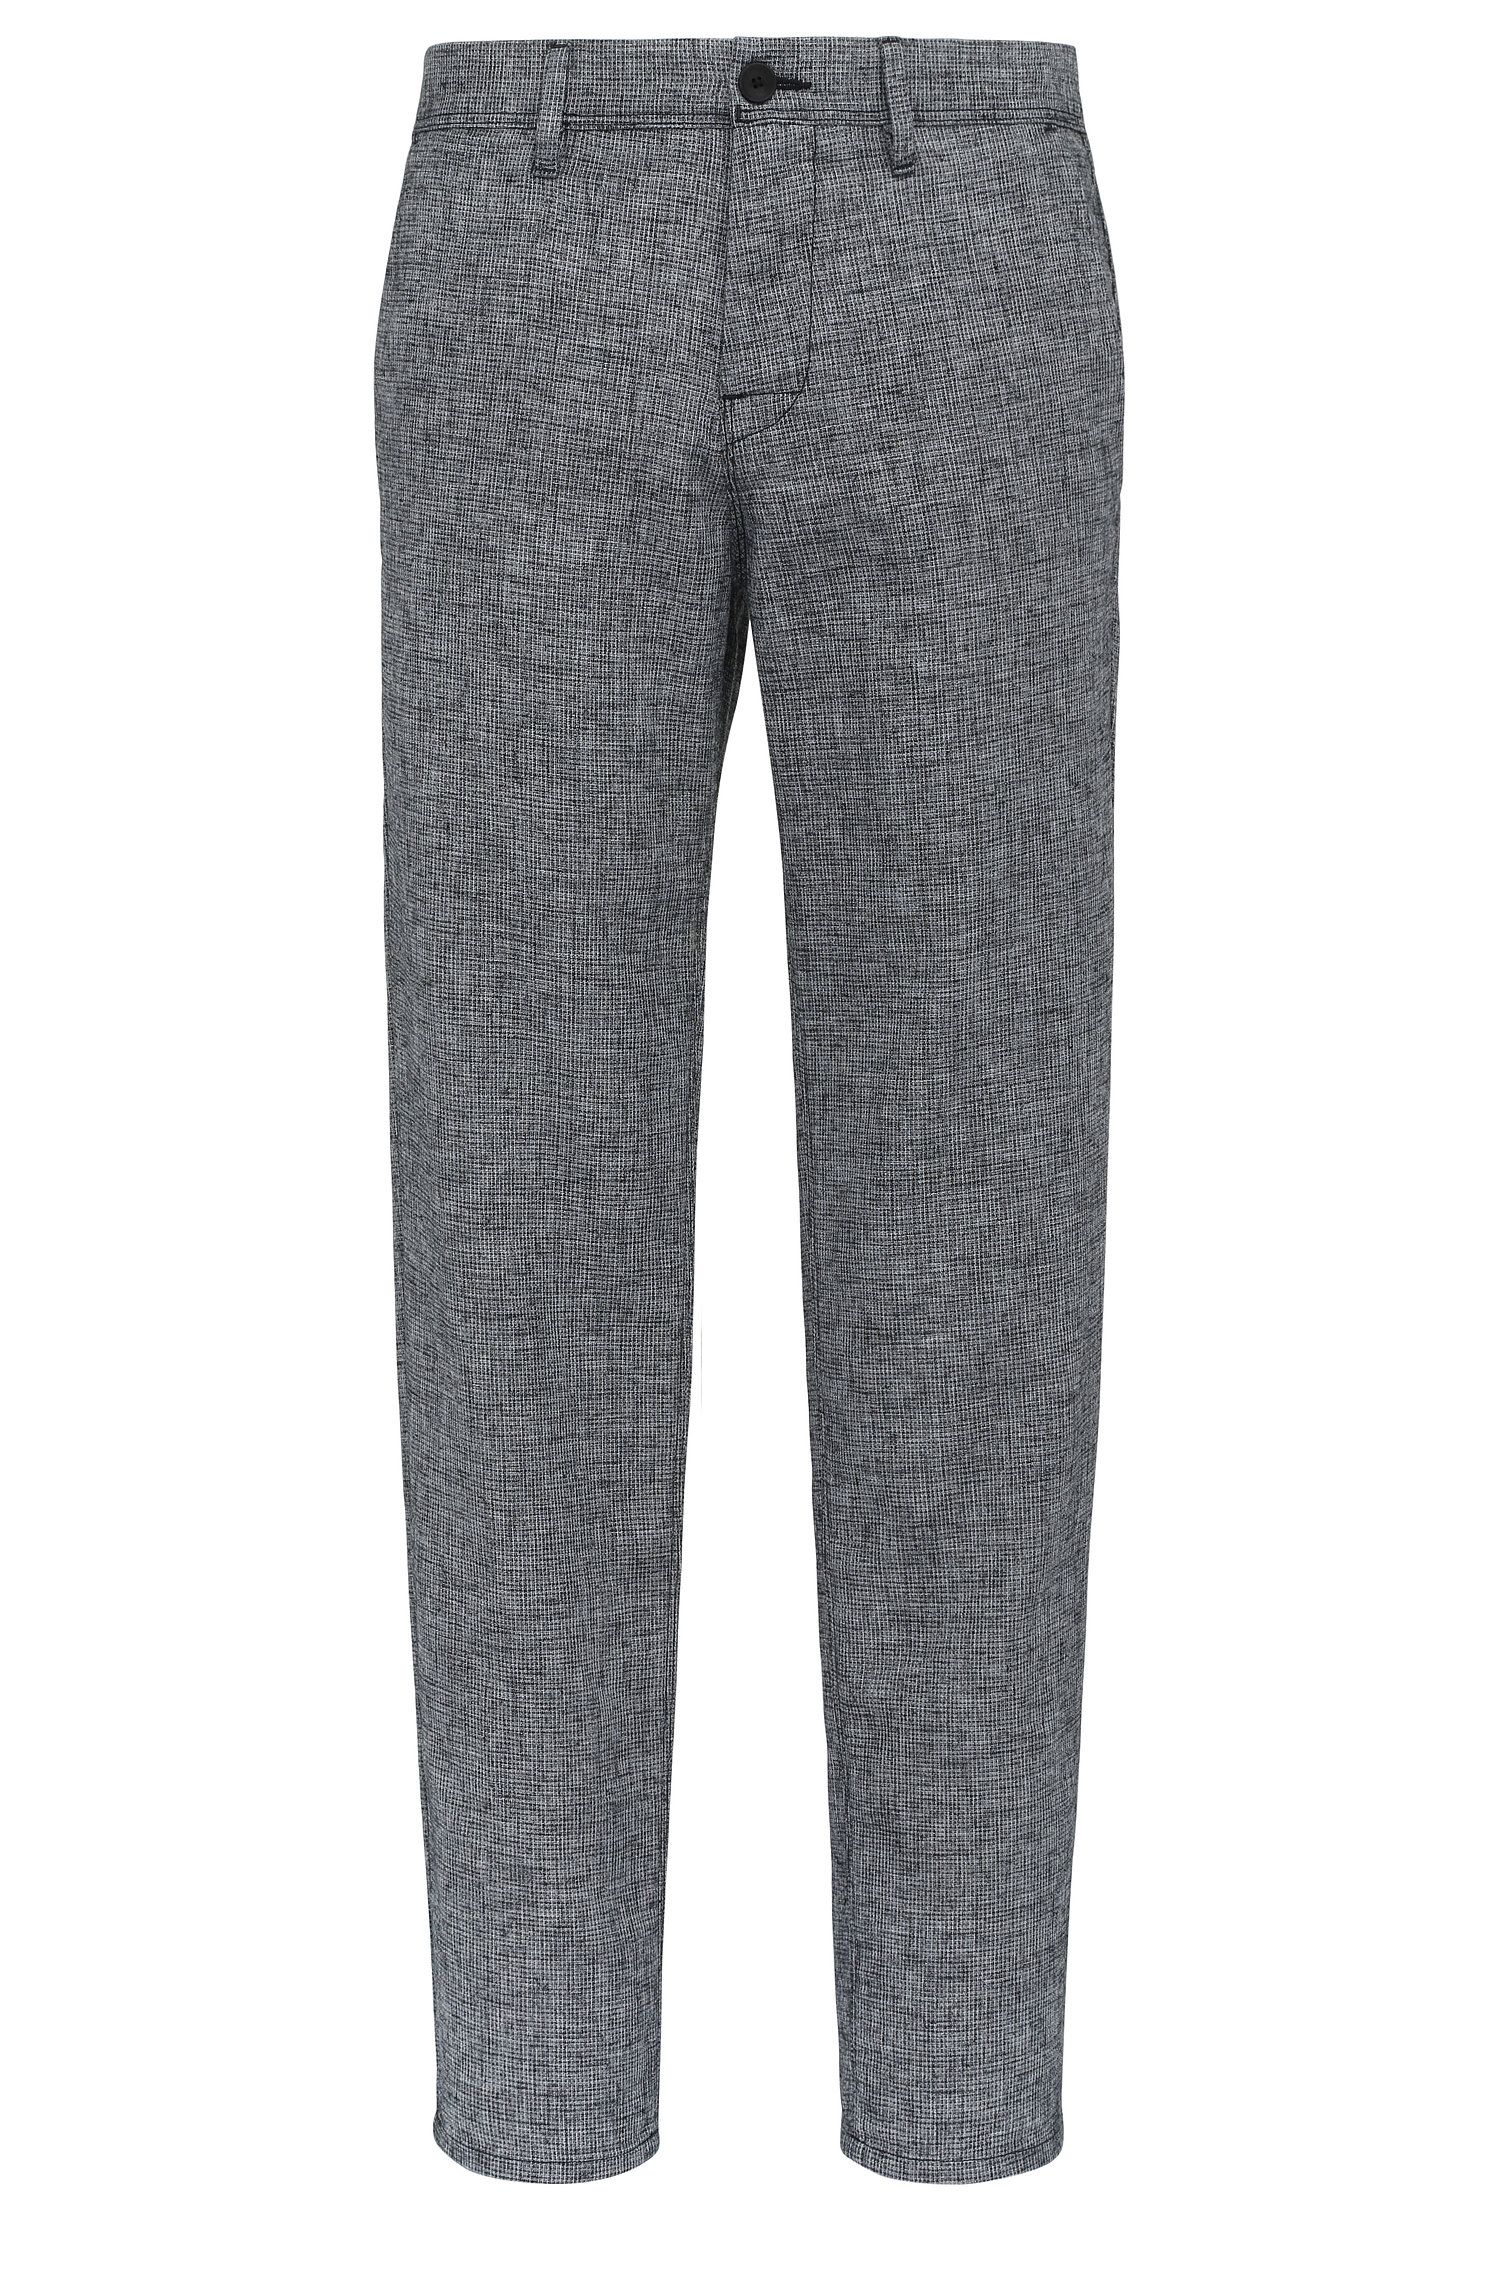 'Stapered W' | Tapered Fit, Cotton Linen Blend Trousers